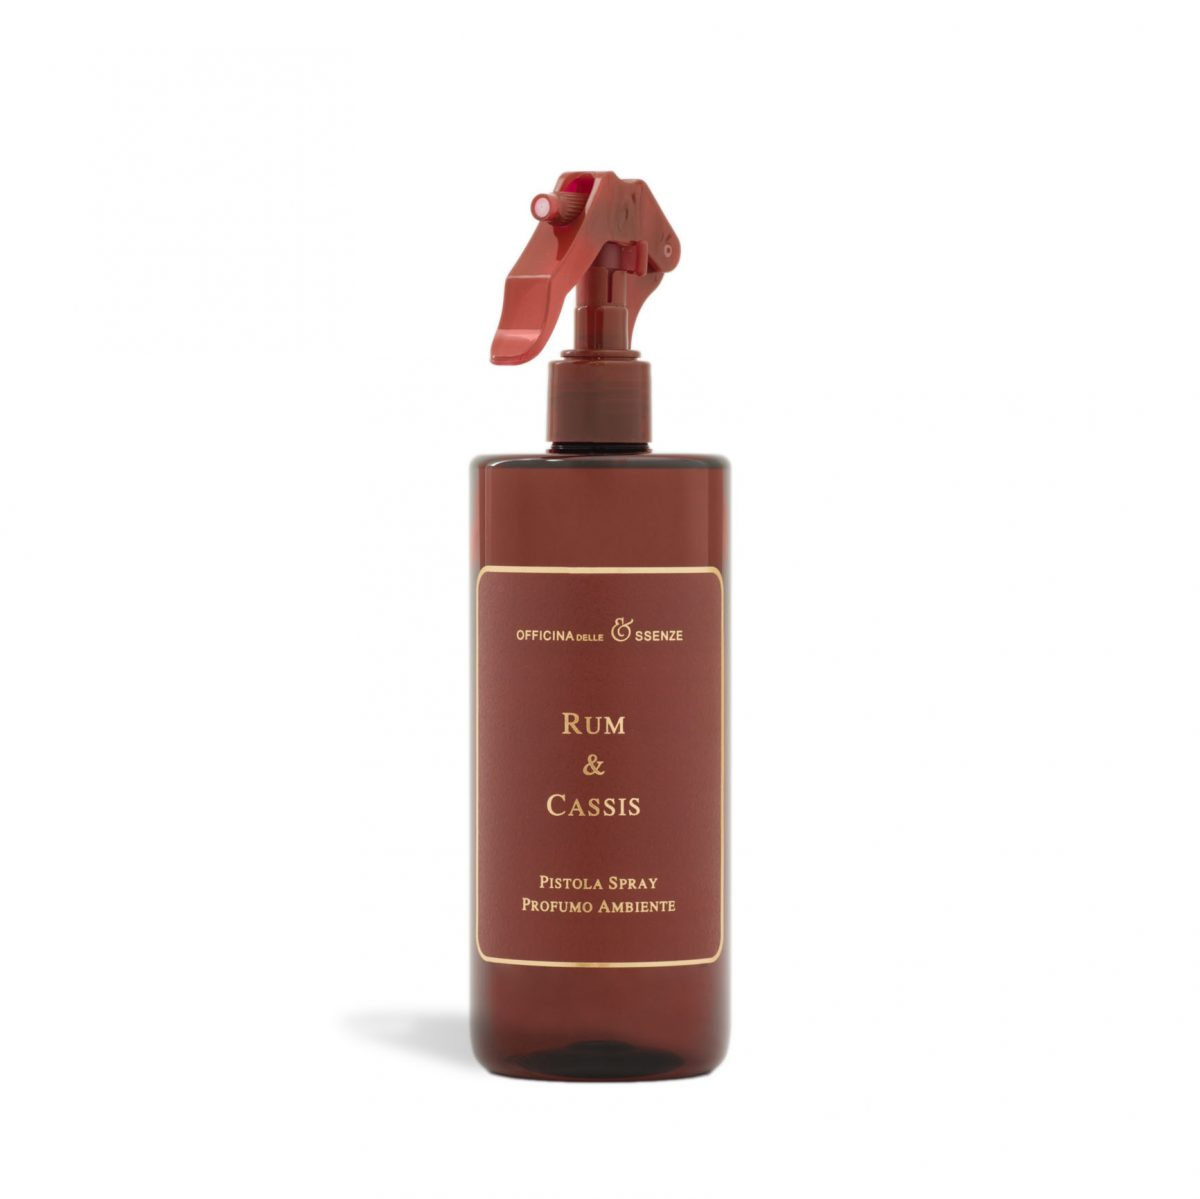 Rum Cassis - Room spray with essential oils, 500 ml